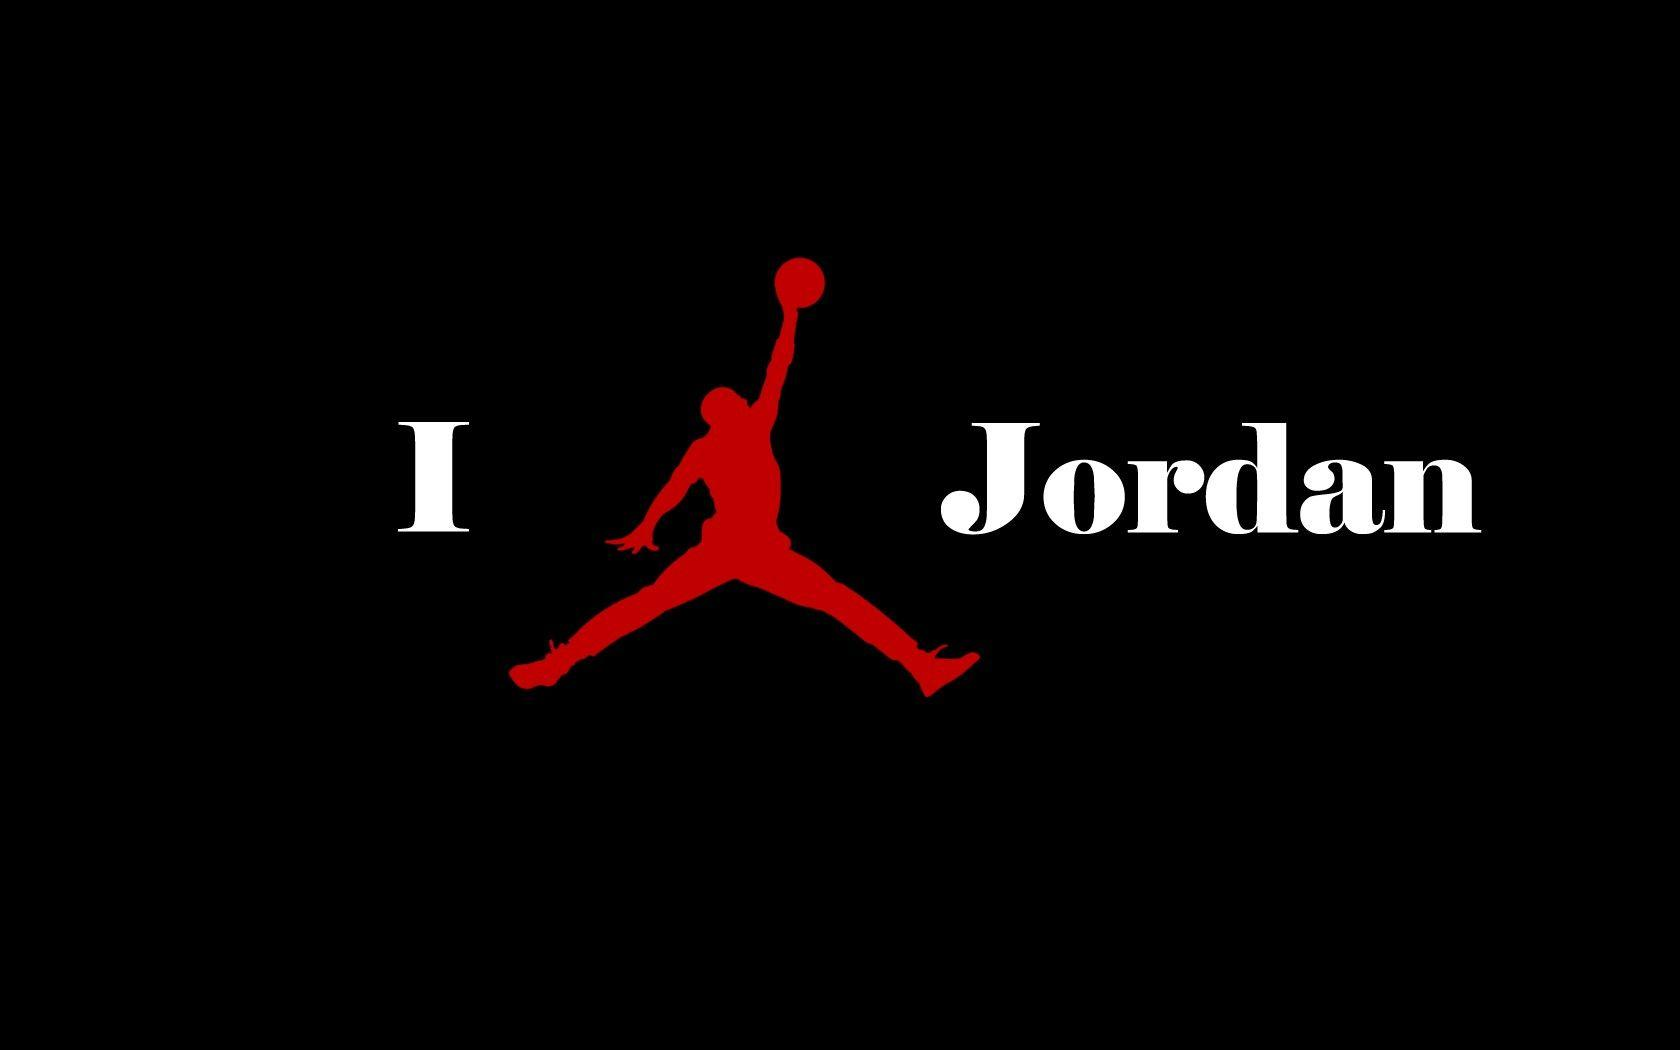 Hd Air Jordan Wallpaper Michael Jordan Logo Free Transparent Png Logos